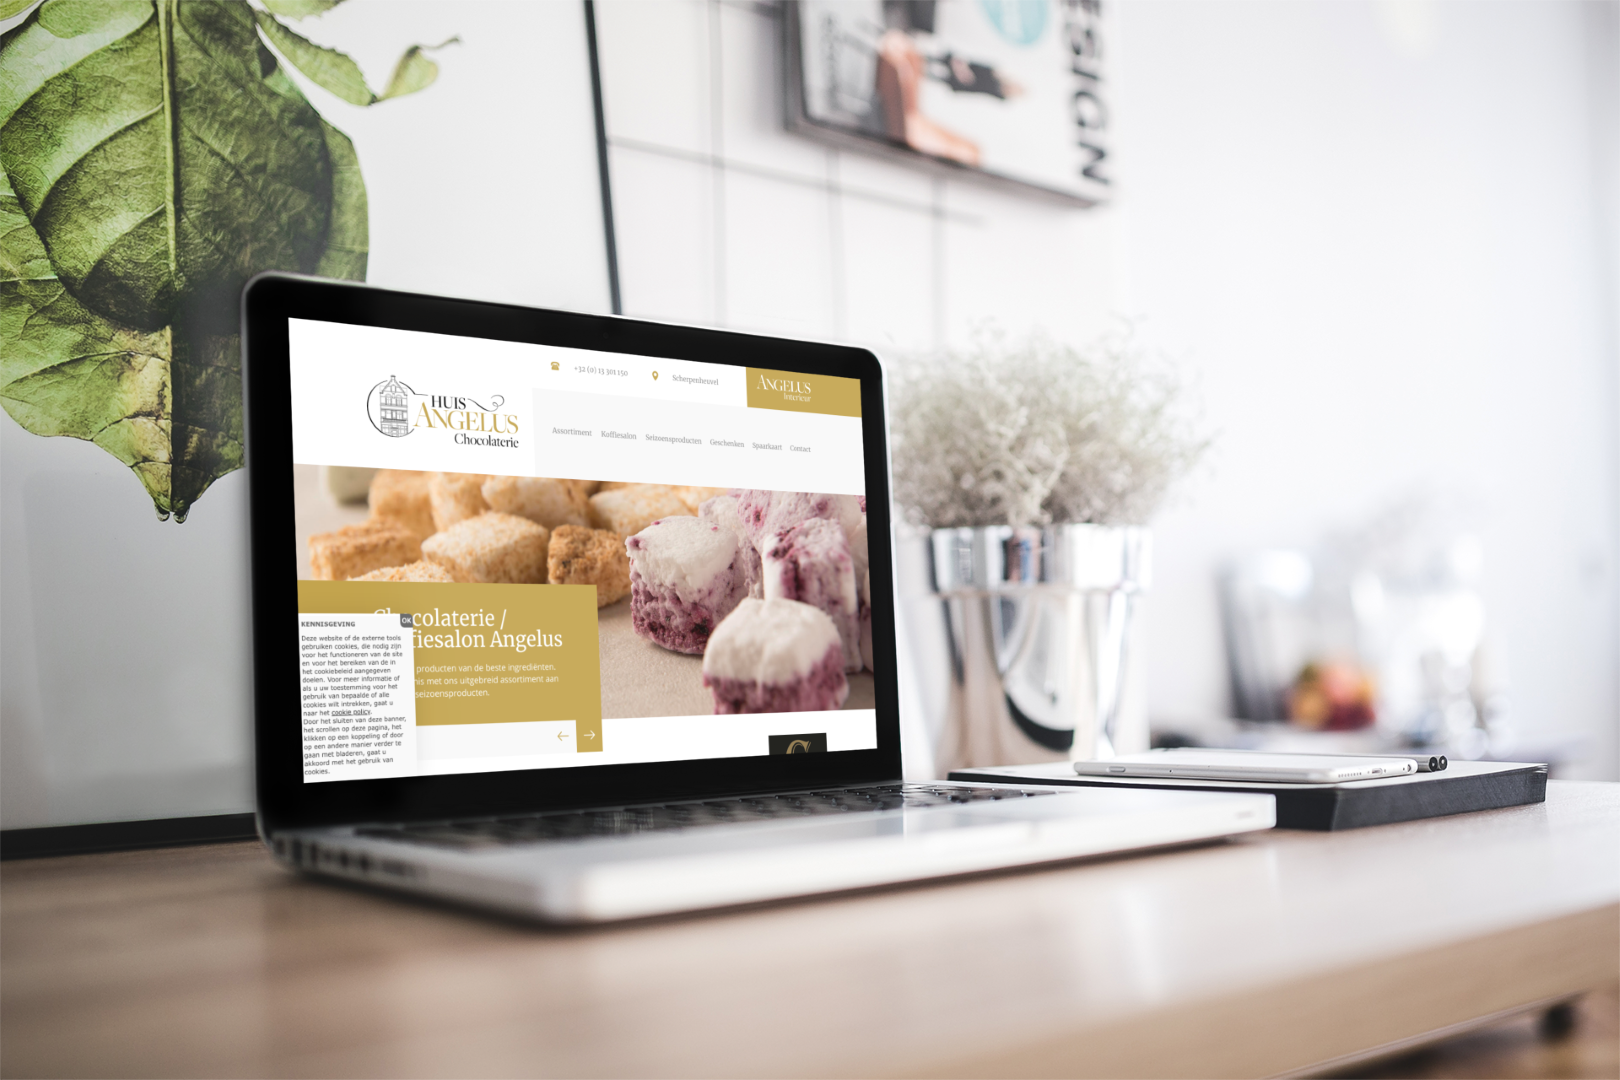 Webdesign Portfolio Webflux - Chocolaterie Angelus